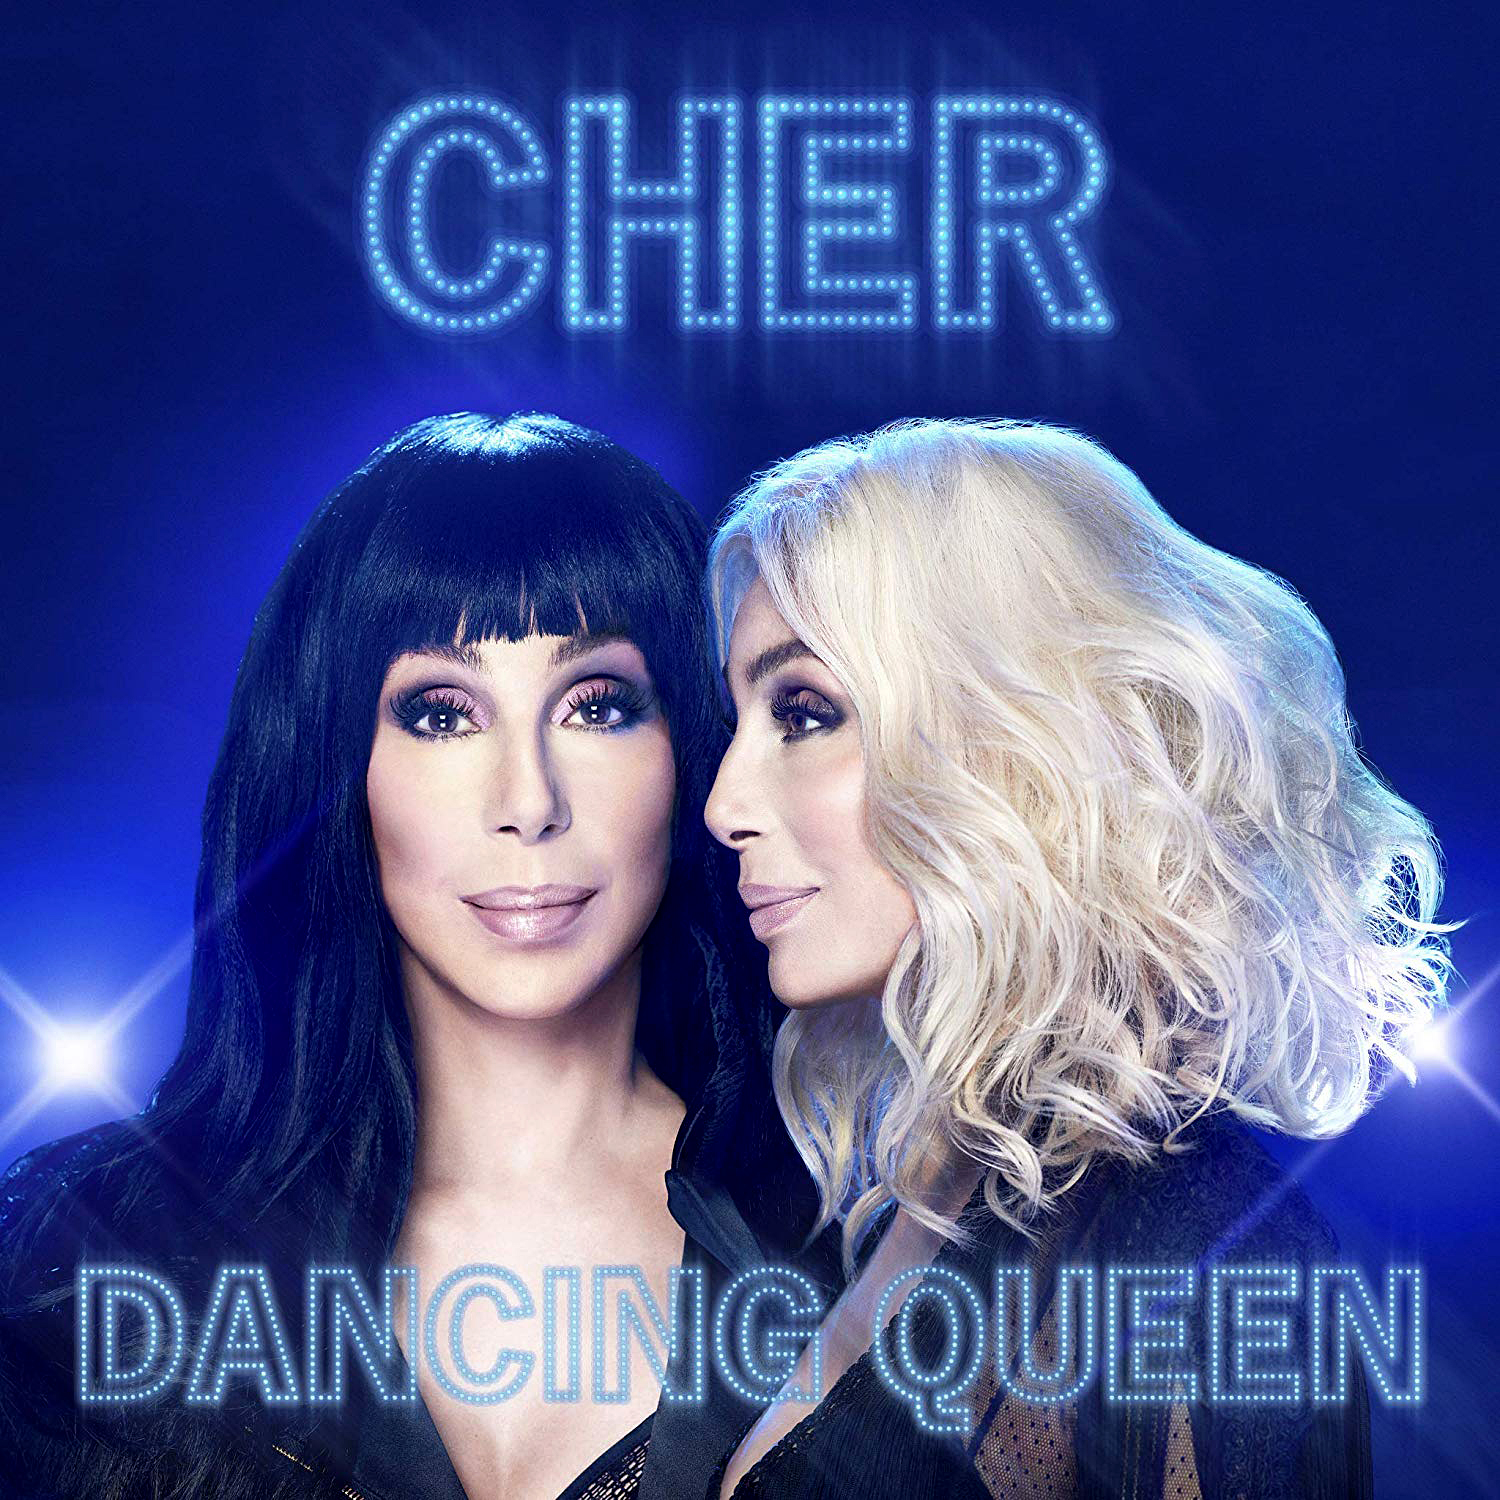 """Cher Through The Years - Cher's Mamma Mia! stint inspired her to record an entire album of ABBA covers, including """"SOS"""" and """"Gimme! Gimme! Gimme! (A Man After Midnight)."""" She promoted it with her Here We Go Again tour, which was scheduled around her Classic Cher residency and is set to end in December 2019."""